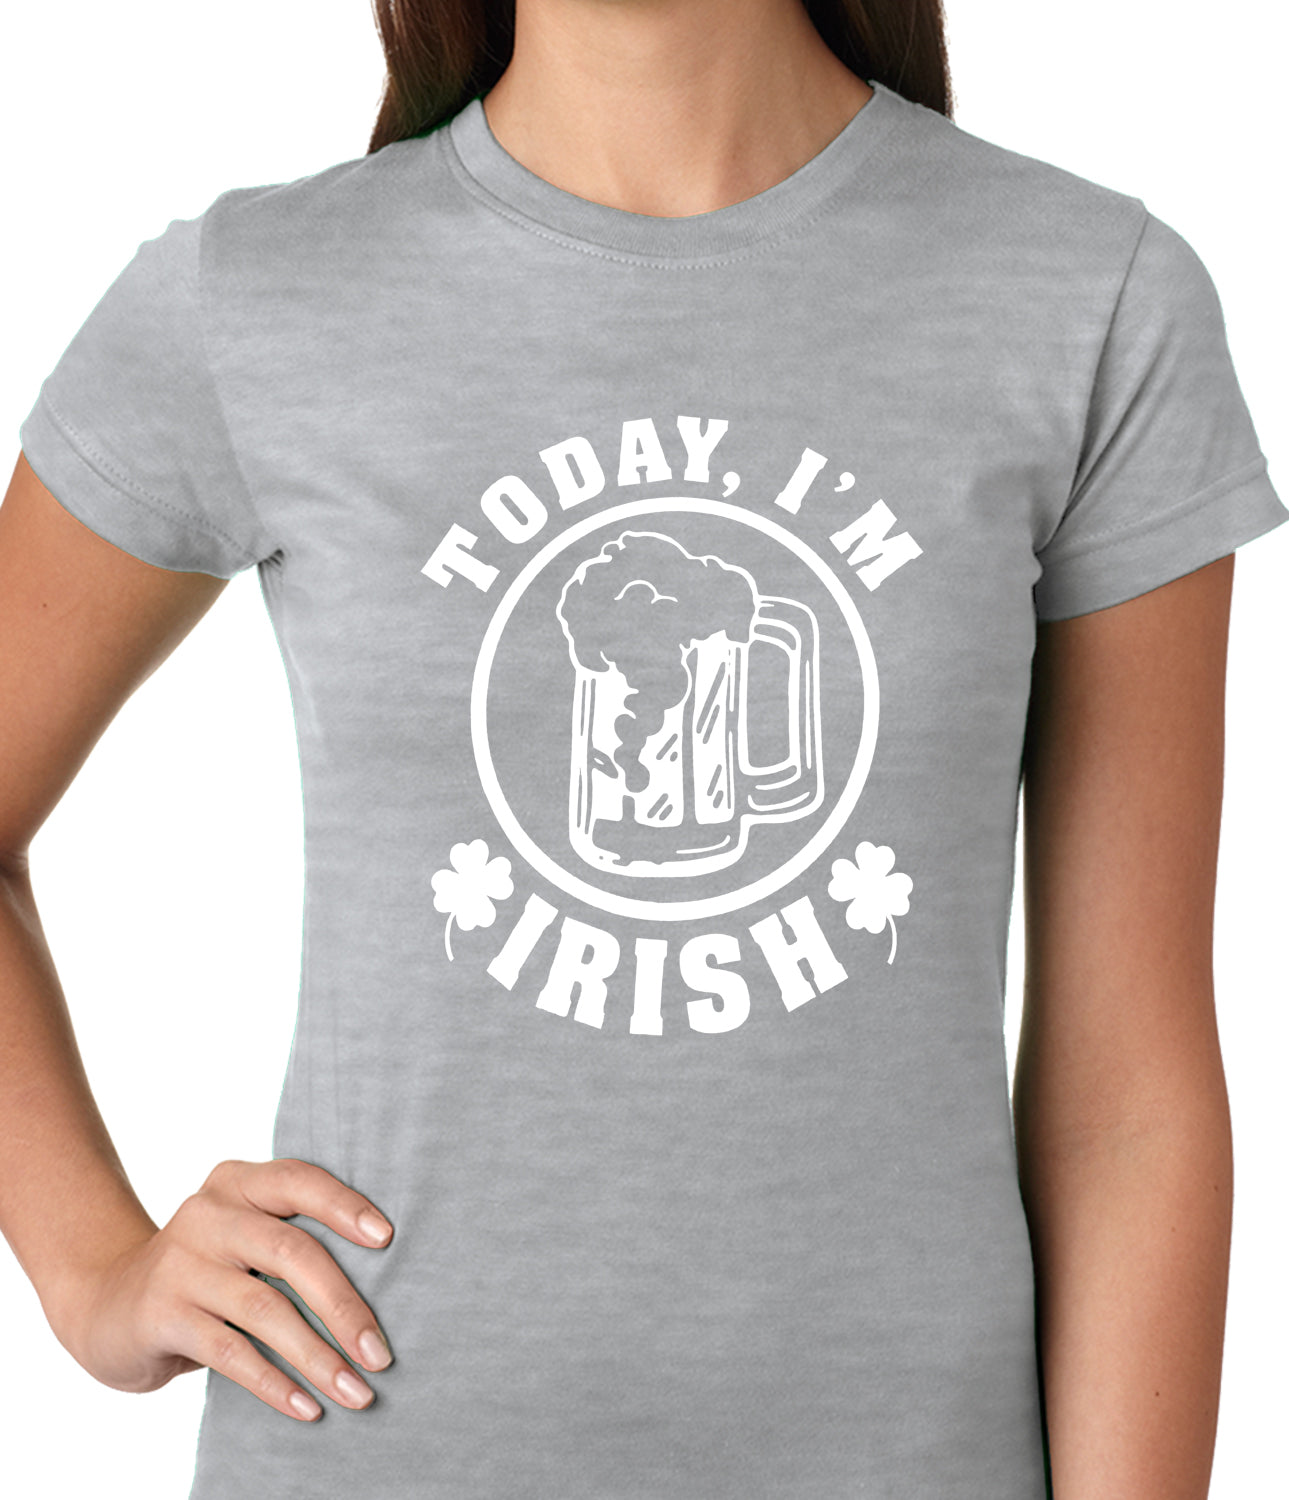 Today I'm Irish St. Patrick's Day Ladies T-shirt